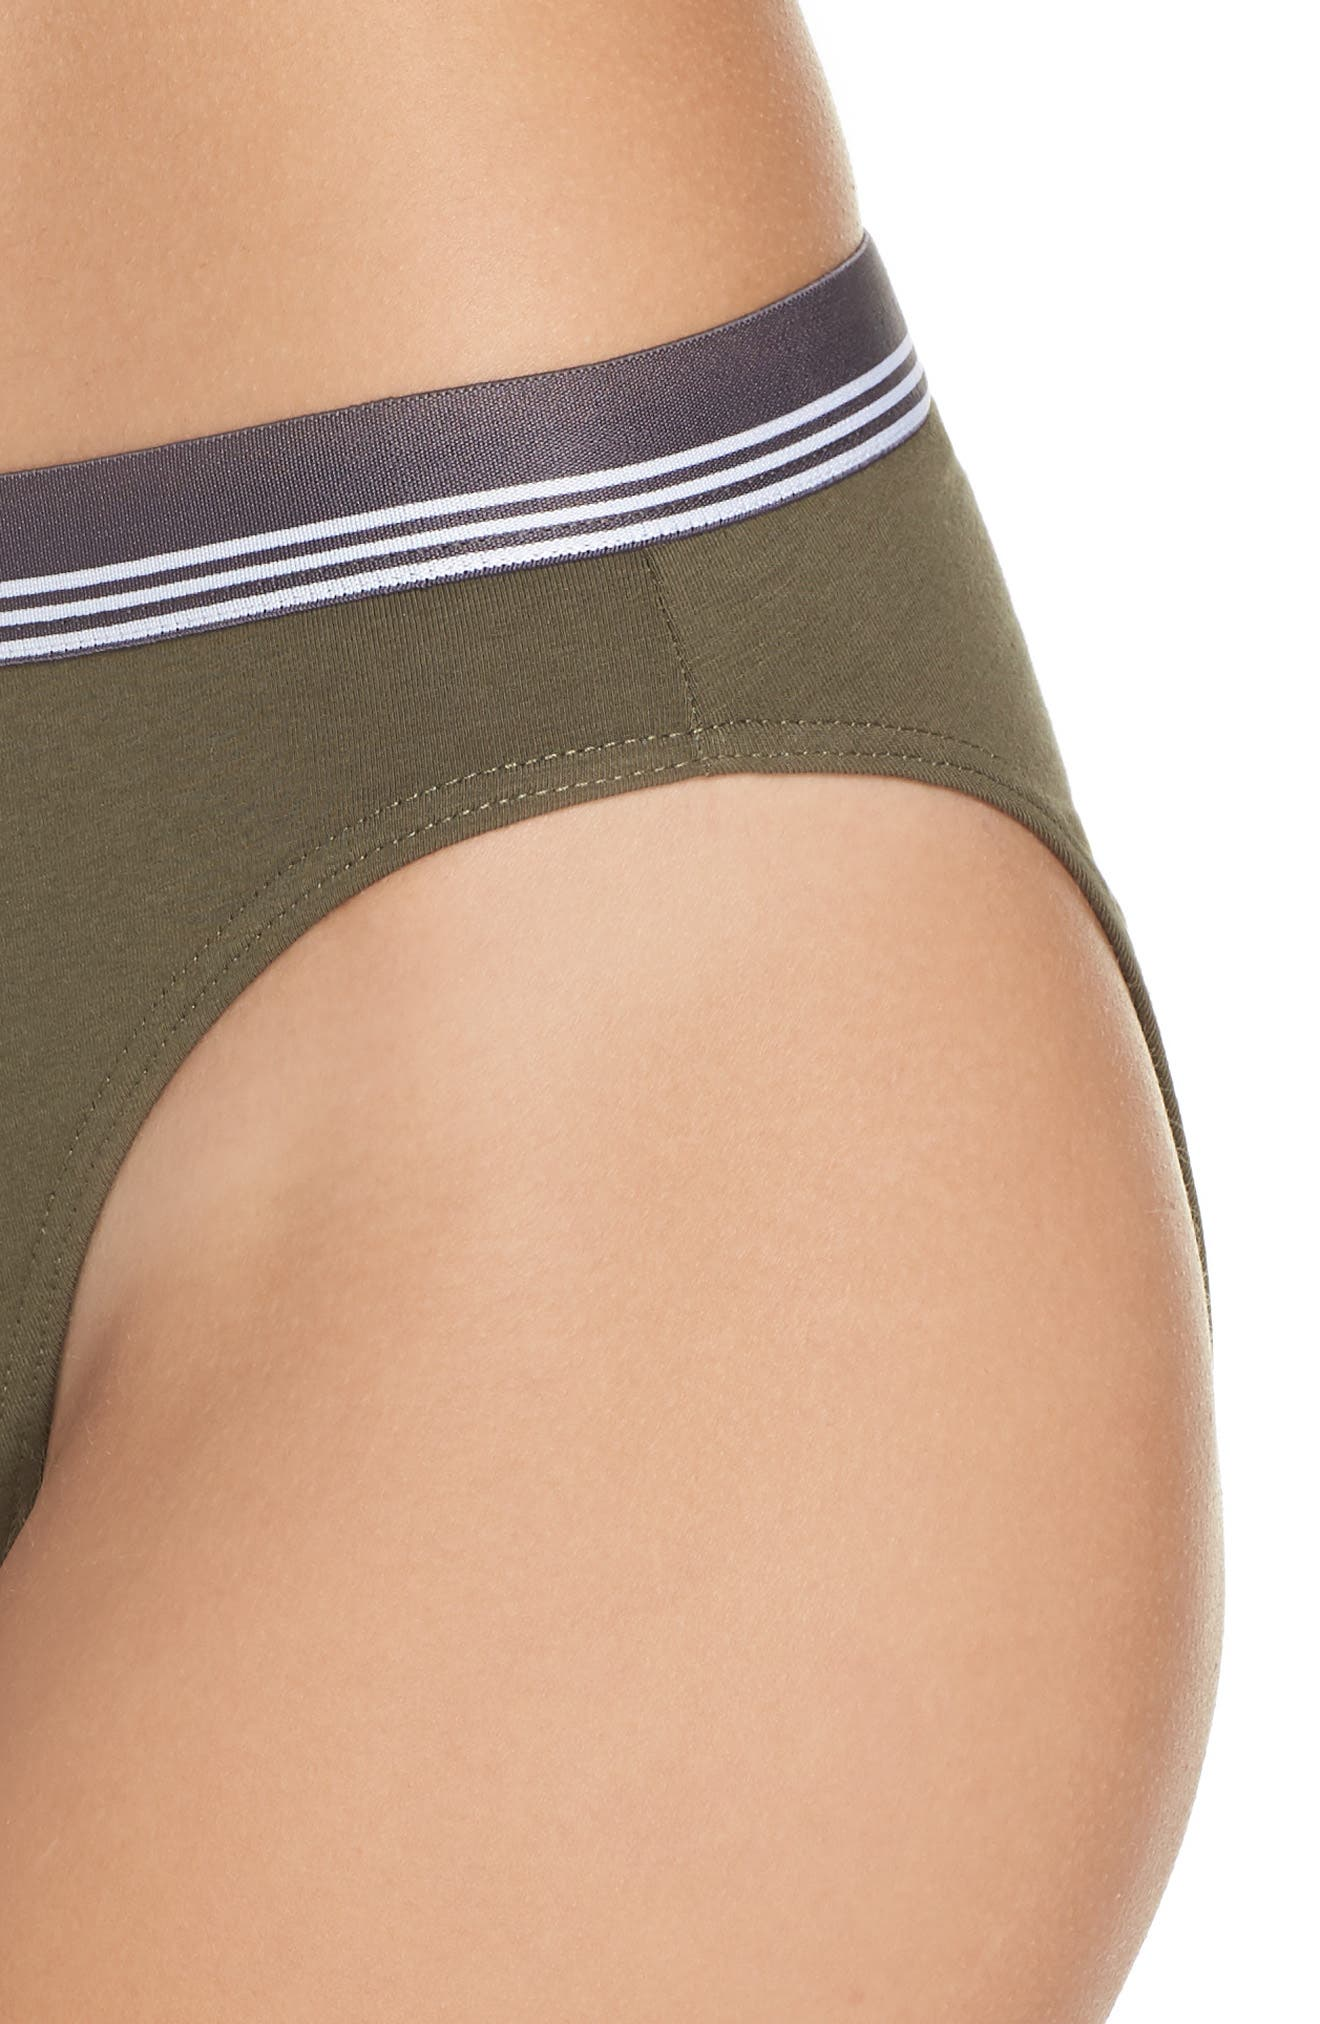 Sporty High Cut Briefs,                             Alternate thumbnail 4, color,                             311